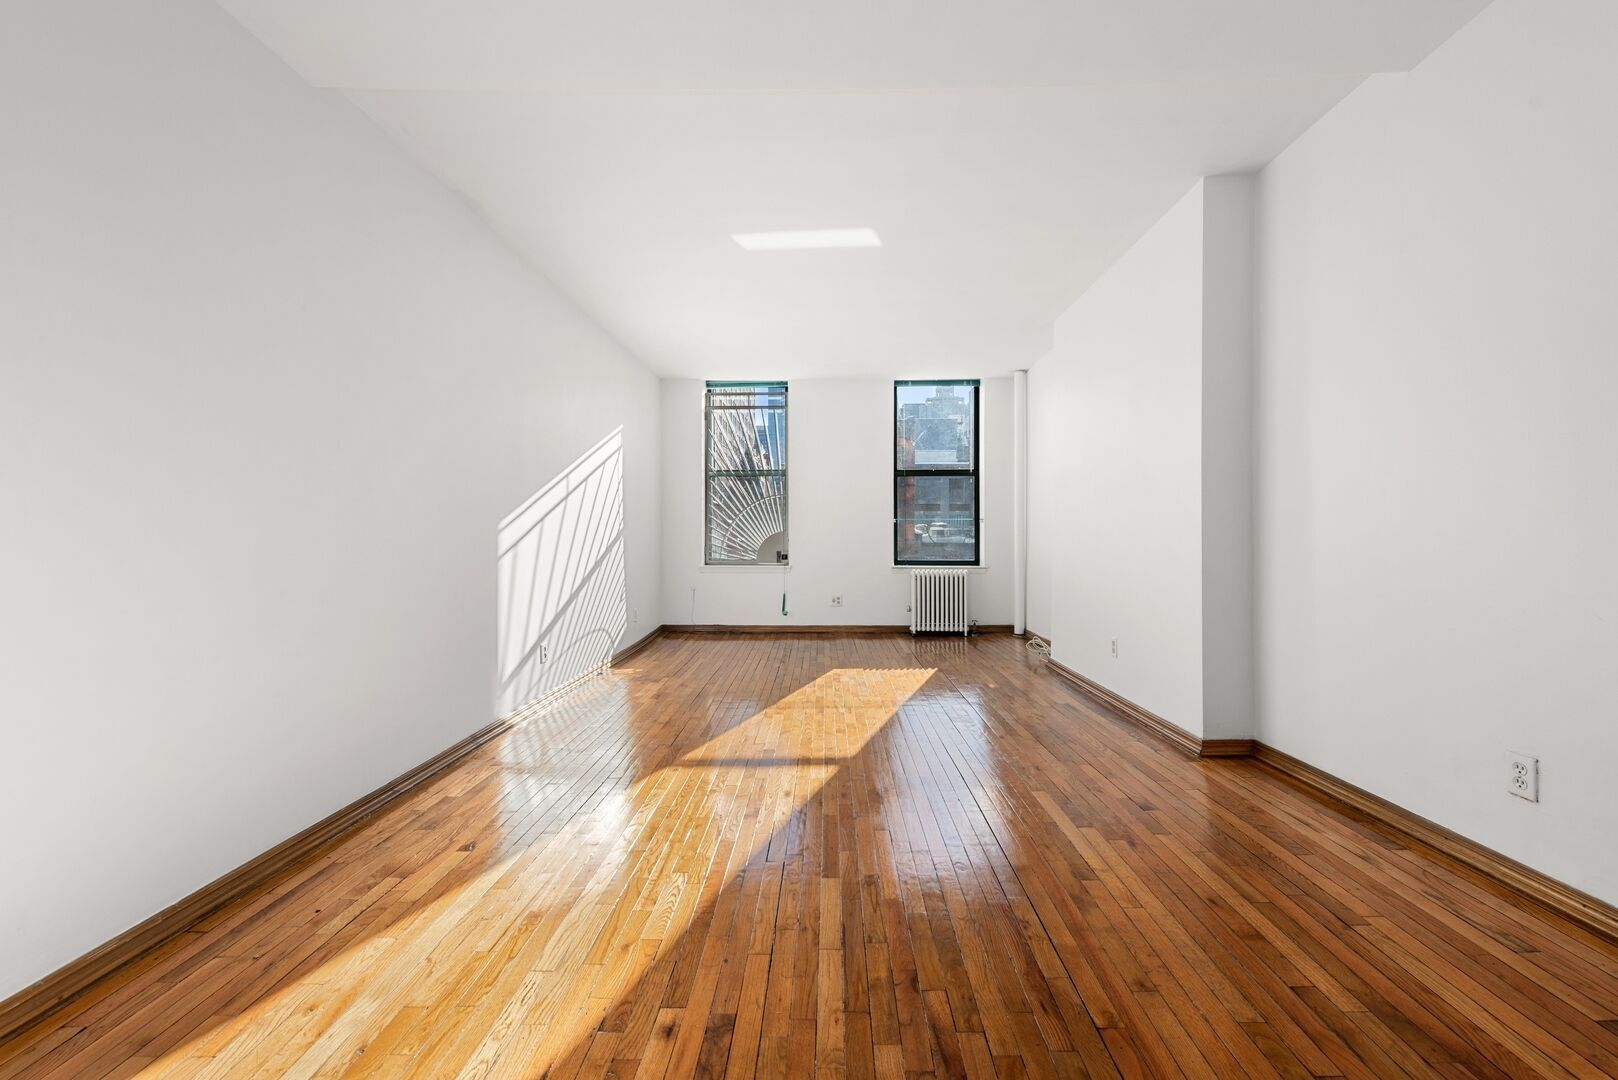 Apartment for sale at 498 West 55th Street, Apt 3-S